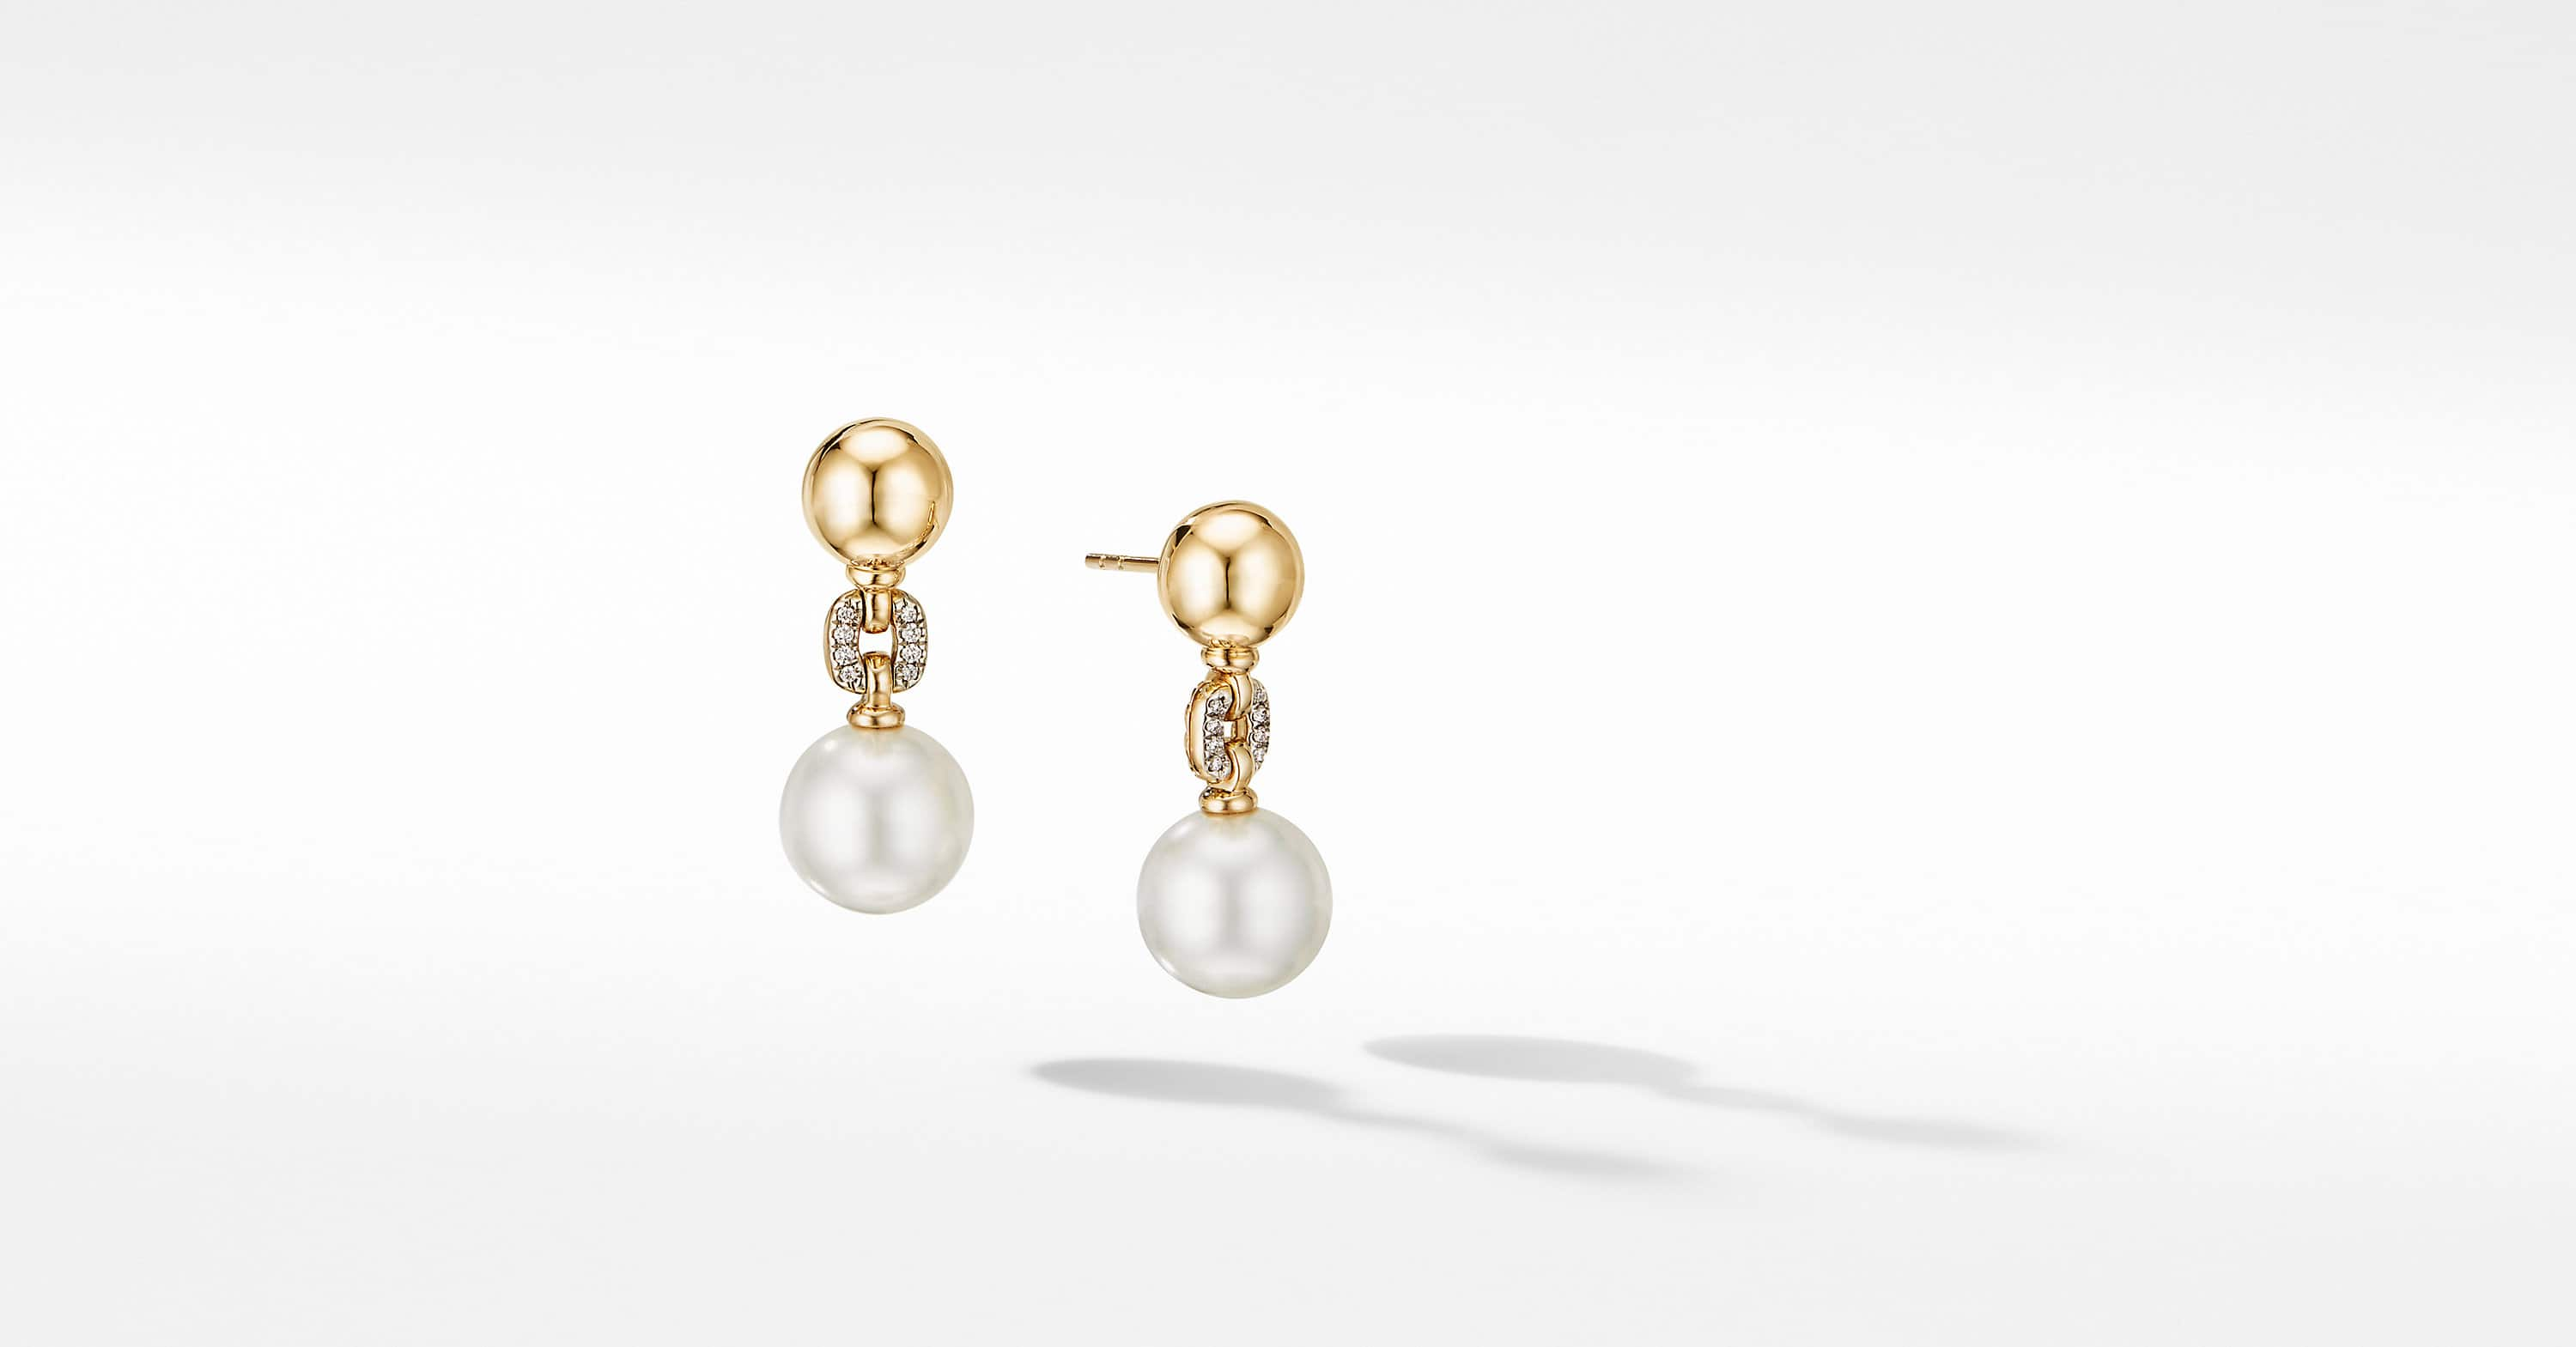 Solari Cushion Link Drop Earrings in 18K Yellow Gold with Pavé